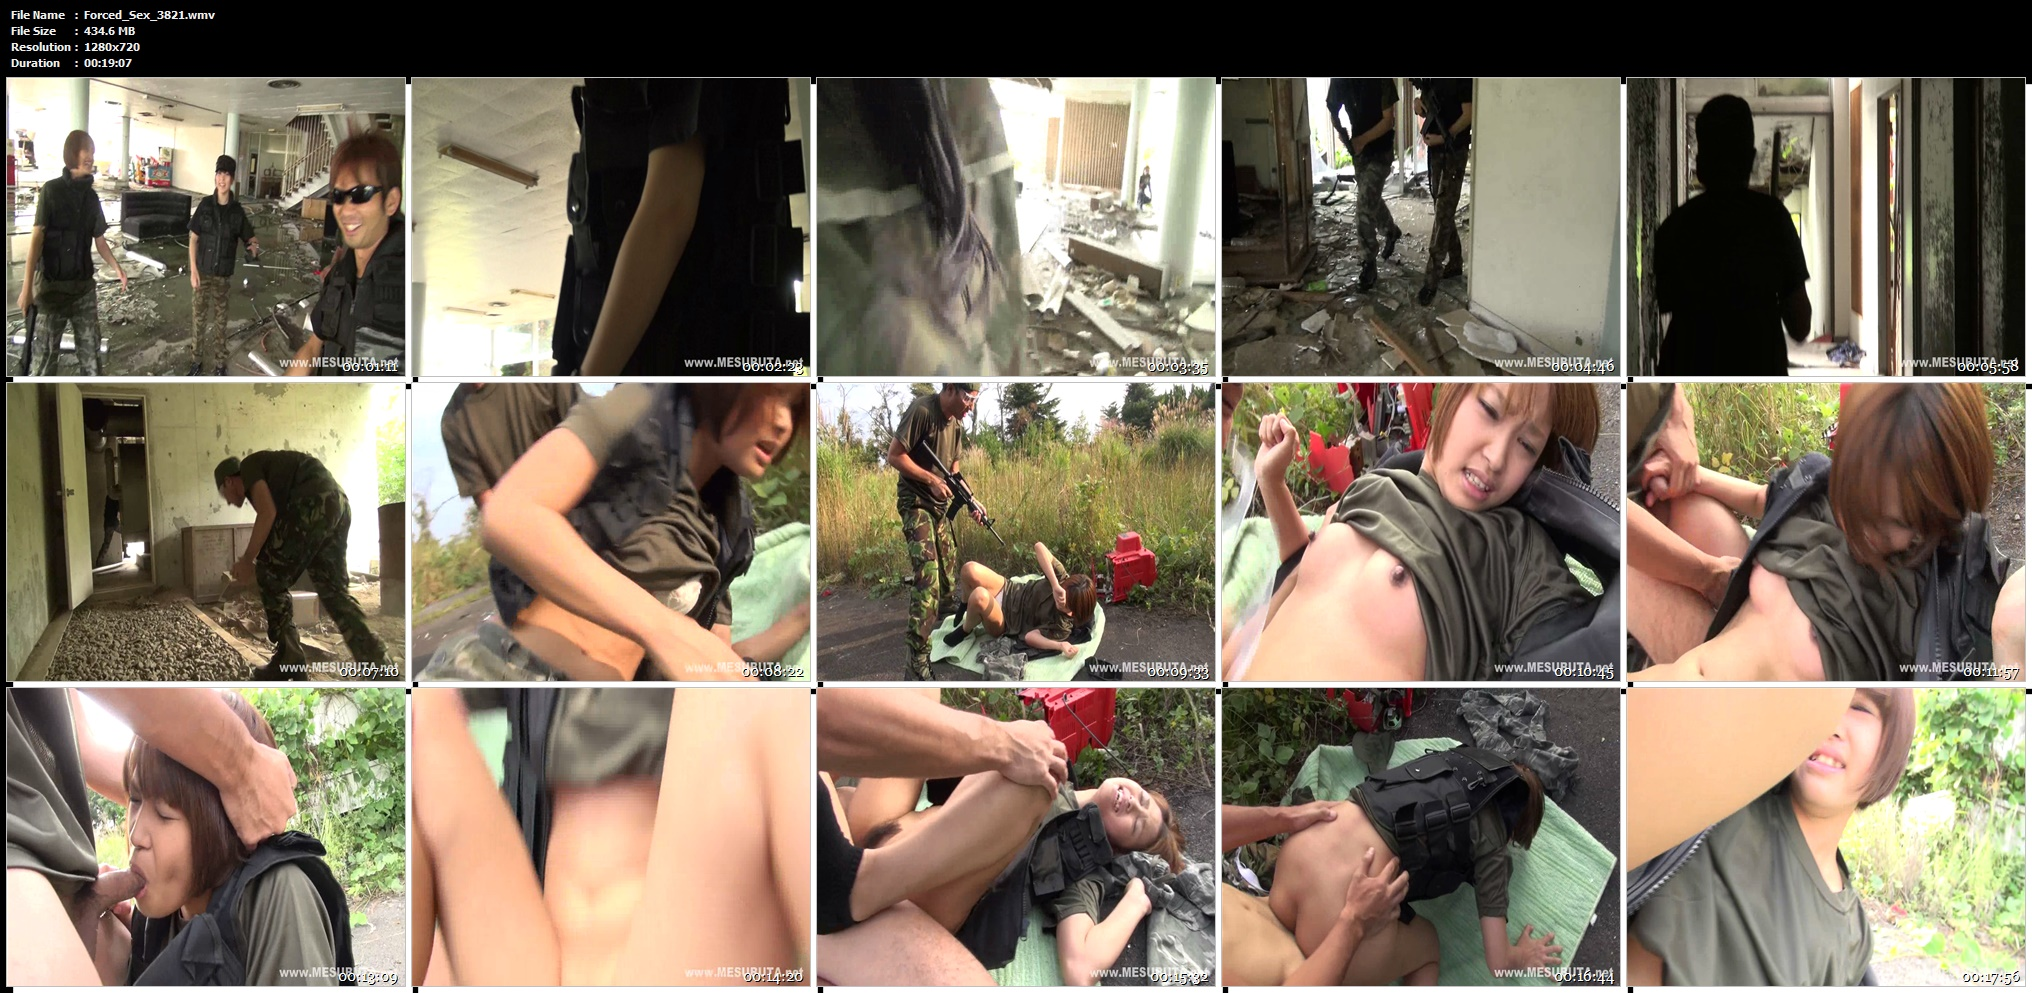 Forced_Sex_3821.wmv,